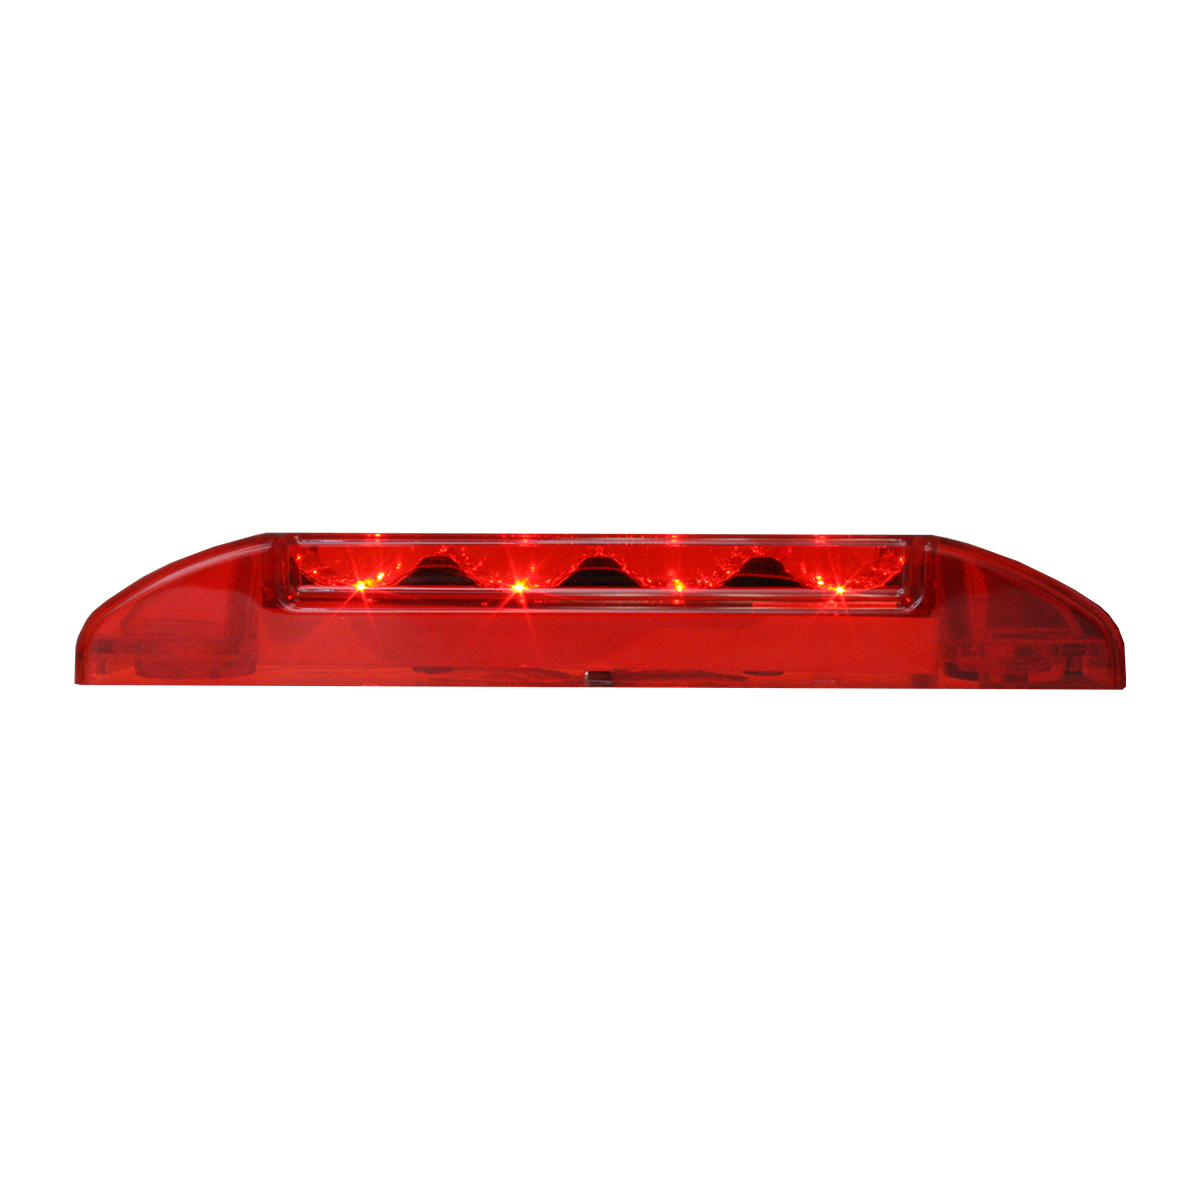 76272 Slim Rectangular Spyder LED Light in Red/Red